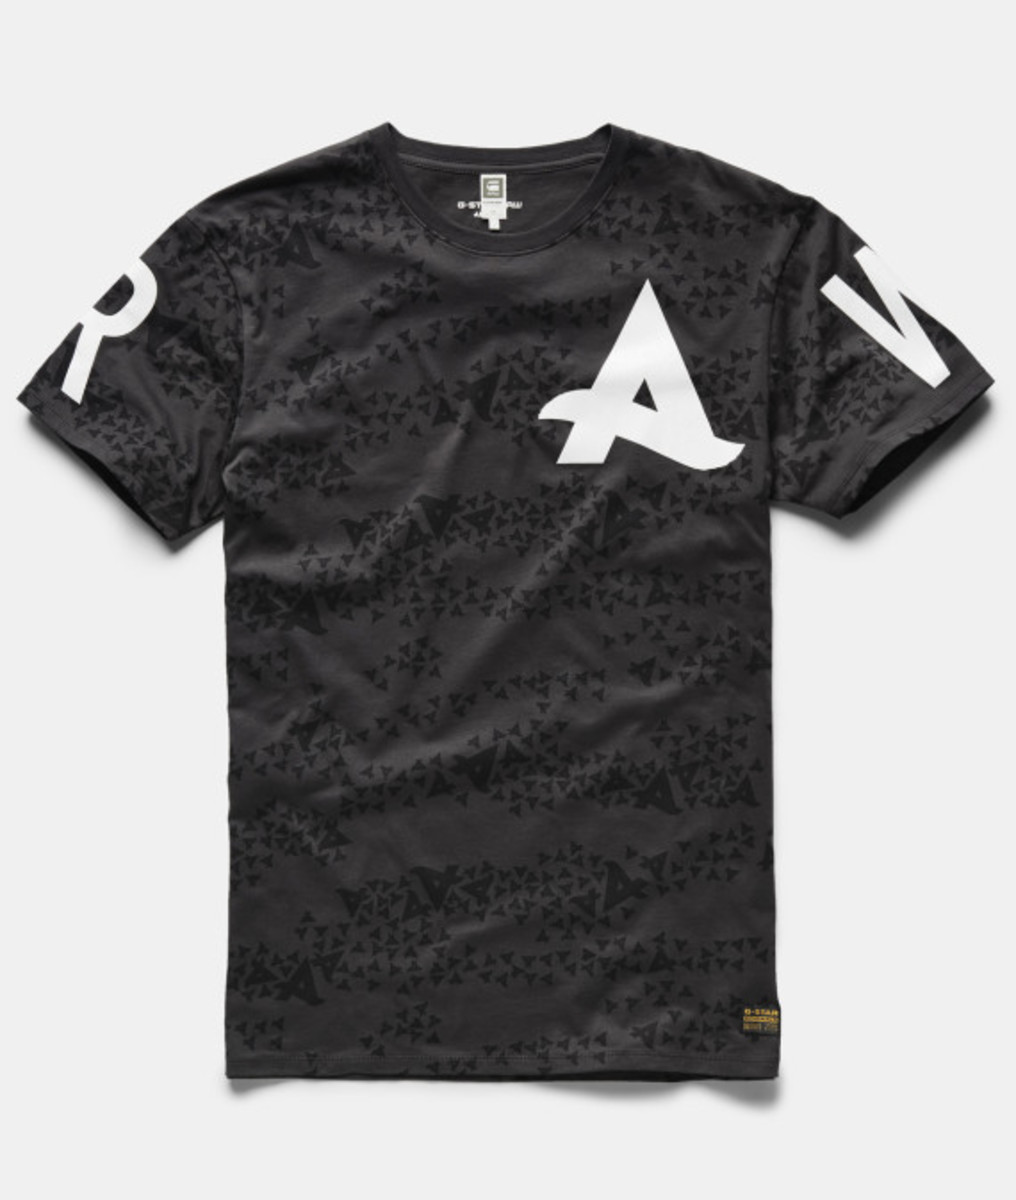 afrojack-g-star-raw-capsule-collection-07